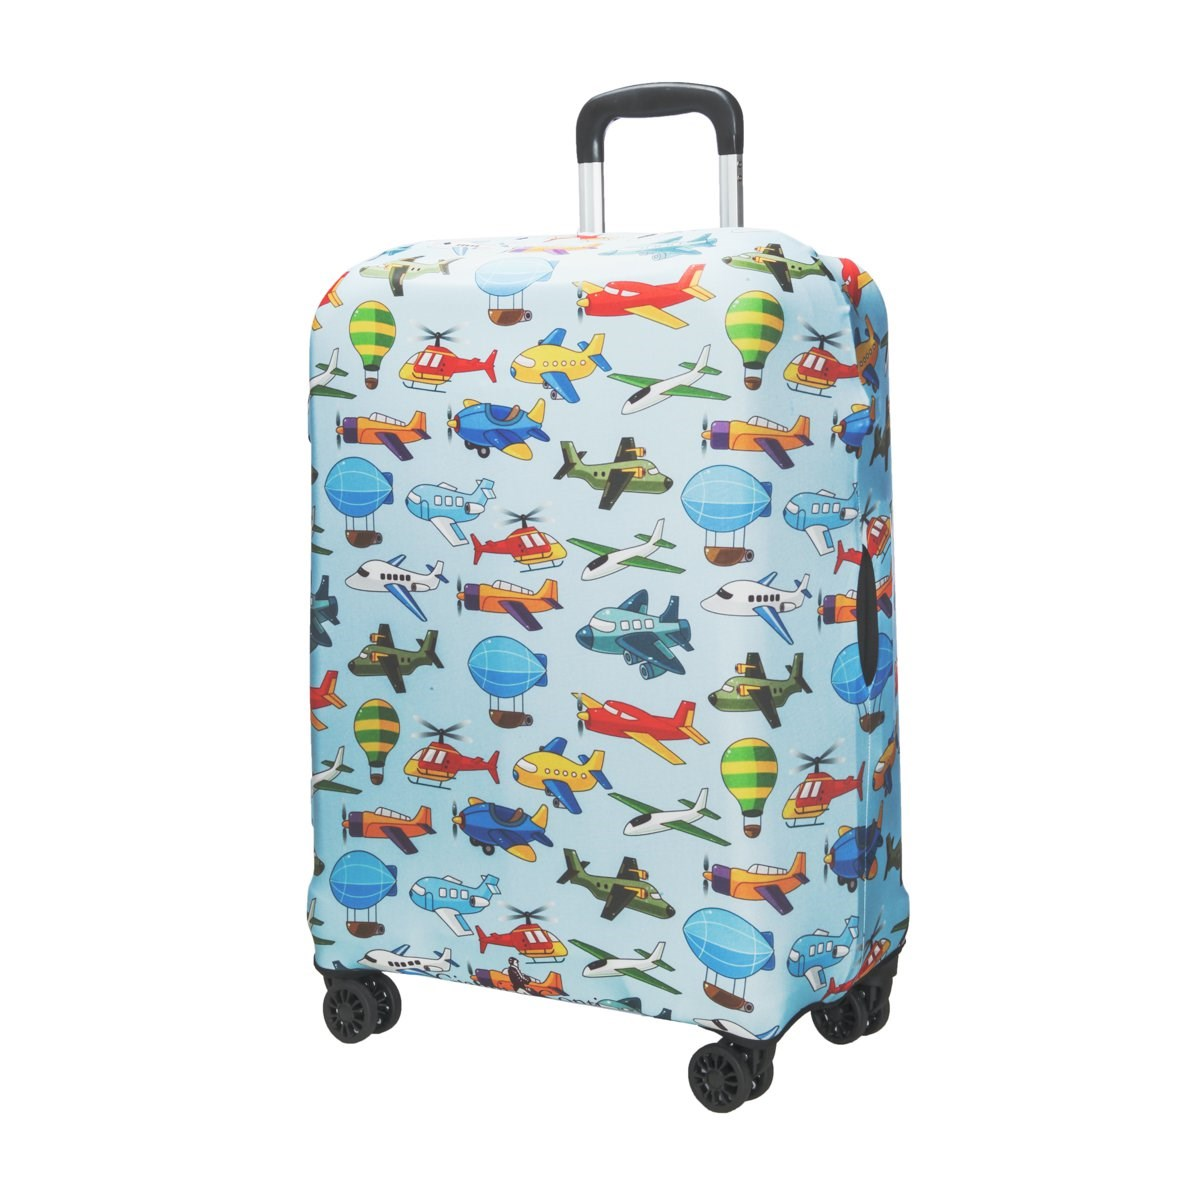 Protective cover for suitcase 9035 L protective fabric pouch for nintendo dsi black